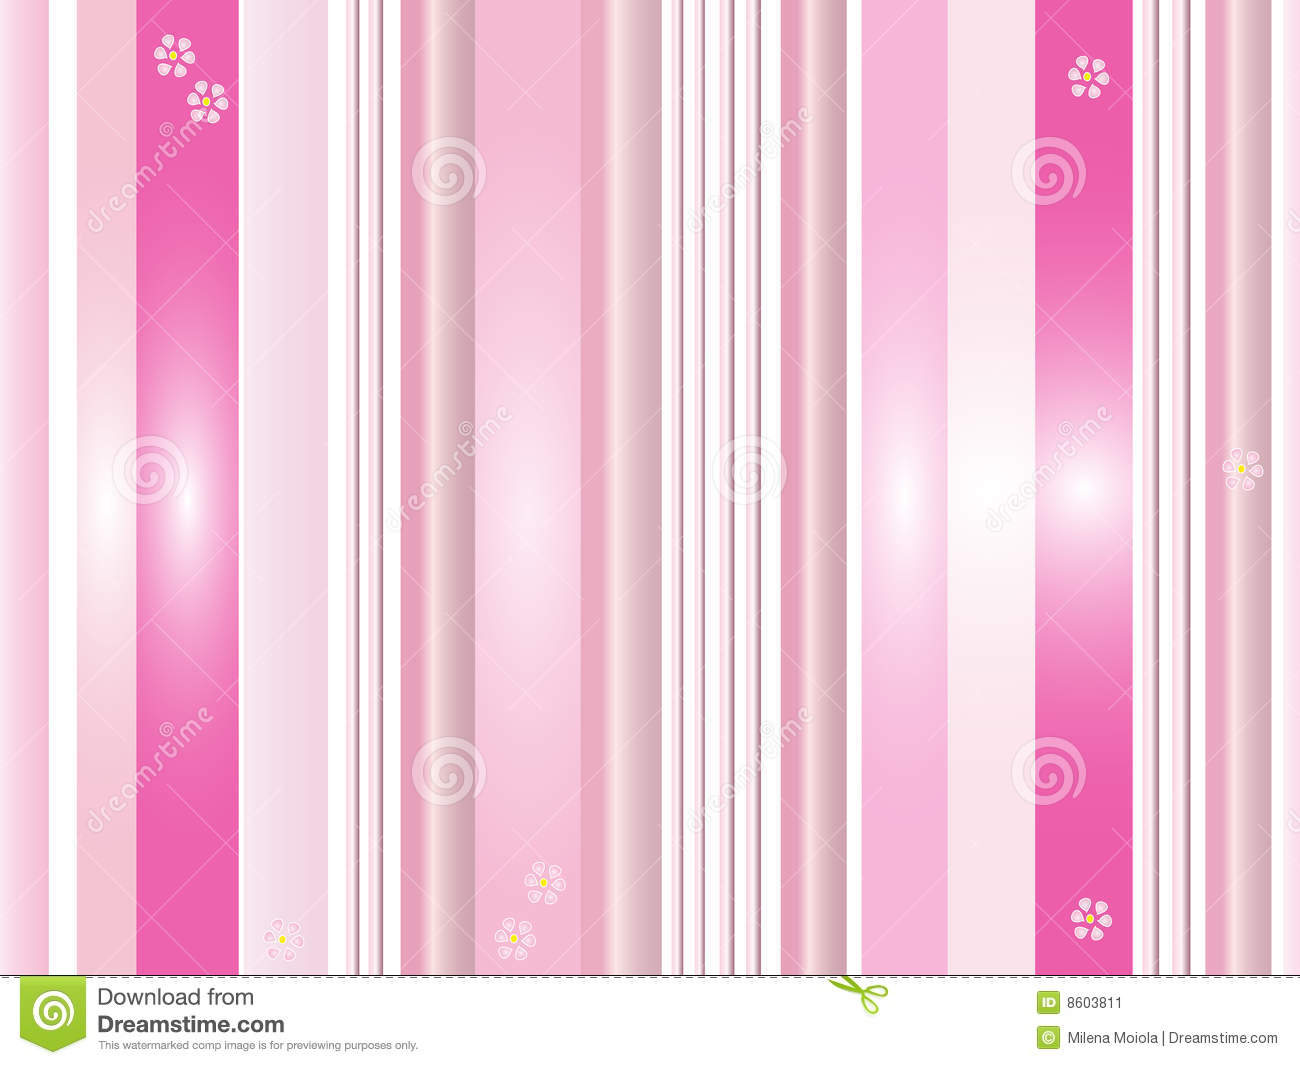 ... pink background designs pink baptism cross clip art pink background